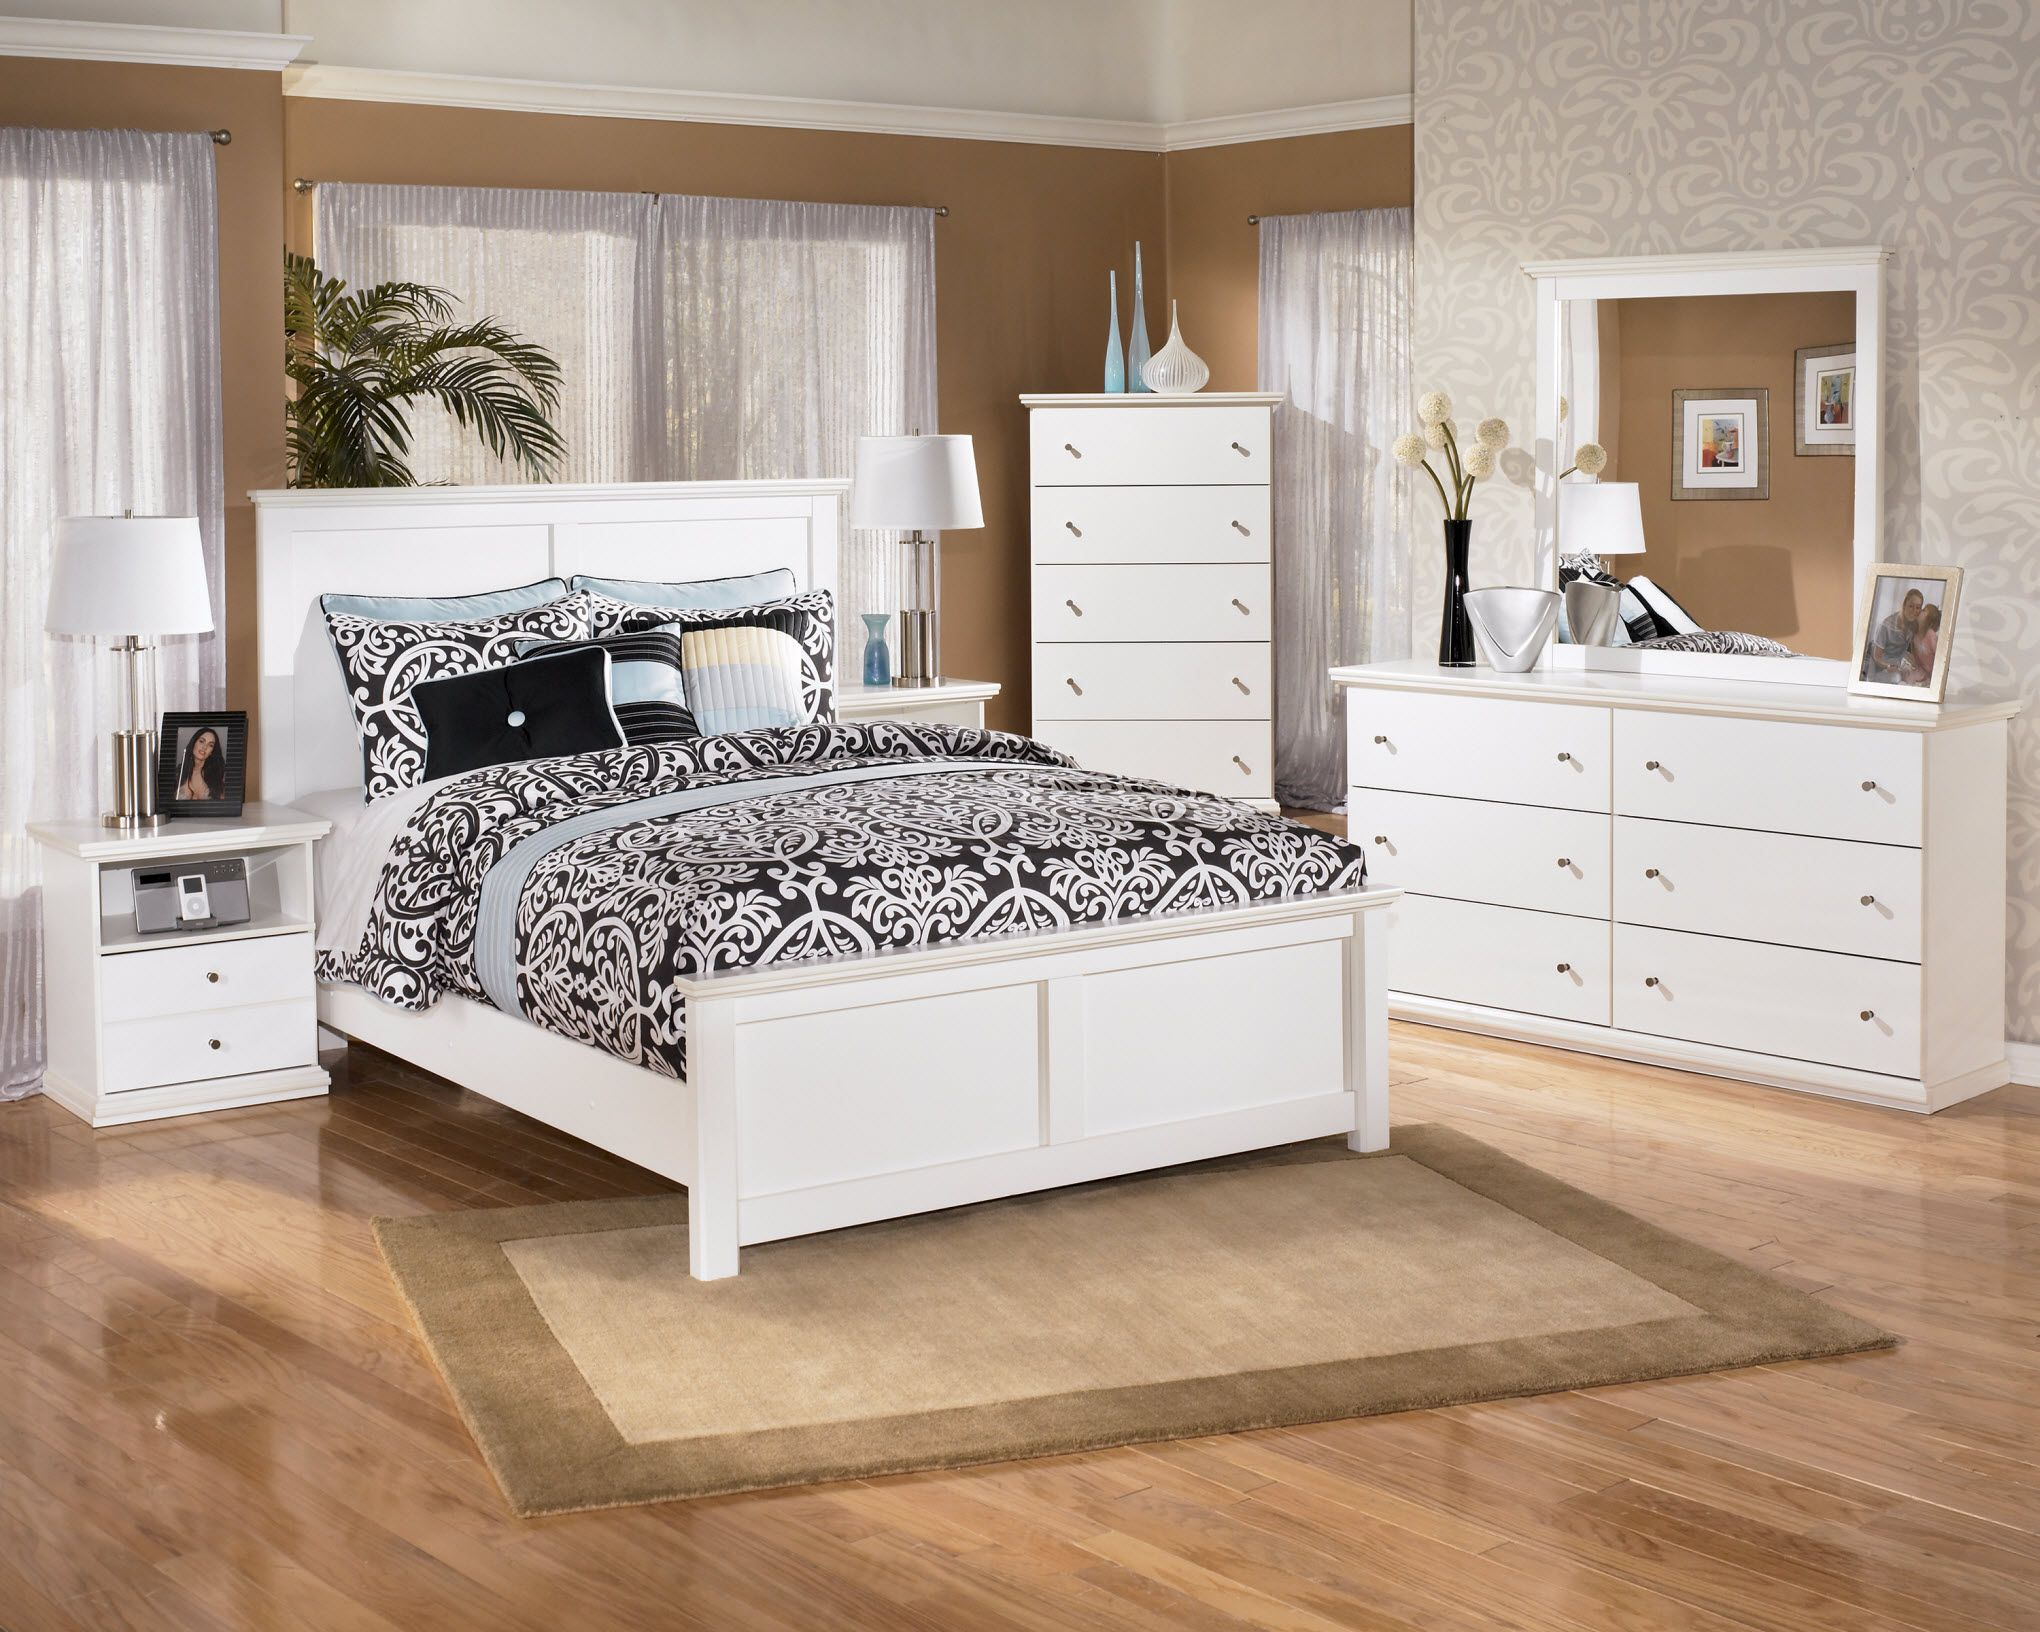 Bedroom Furniture Stores Austin Tx Ideas ashley furniture king bedroom set white for more pictures and